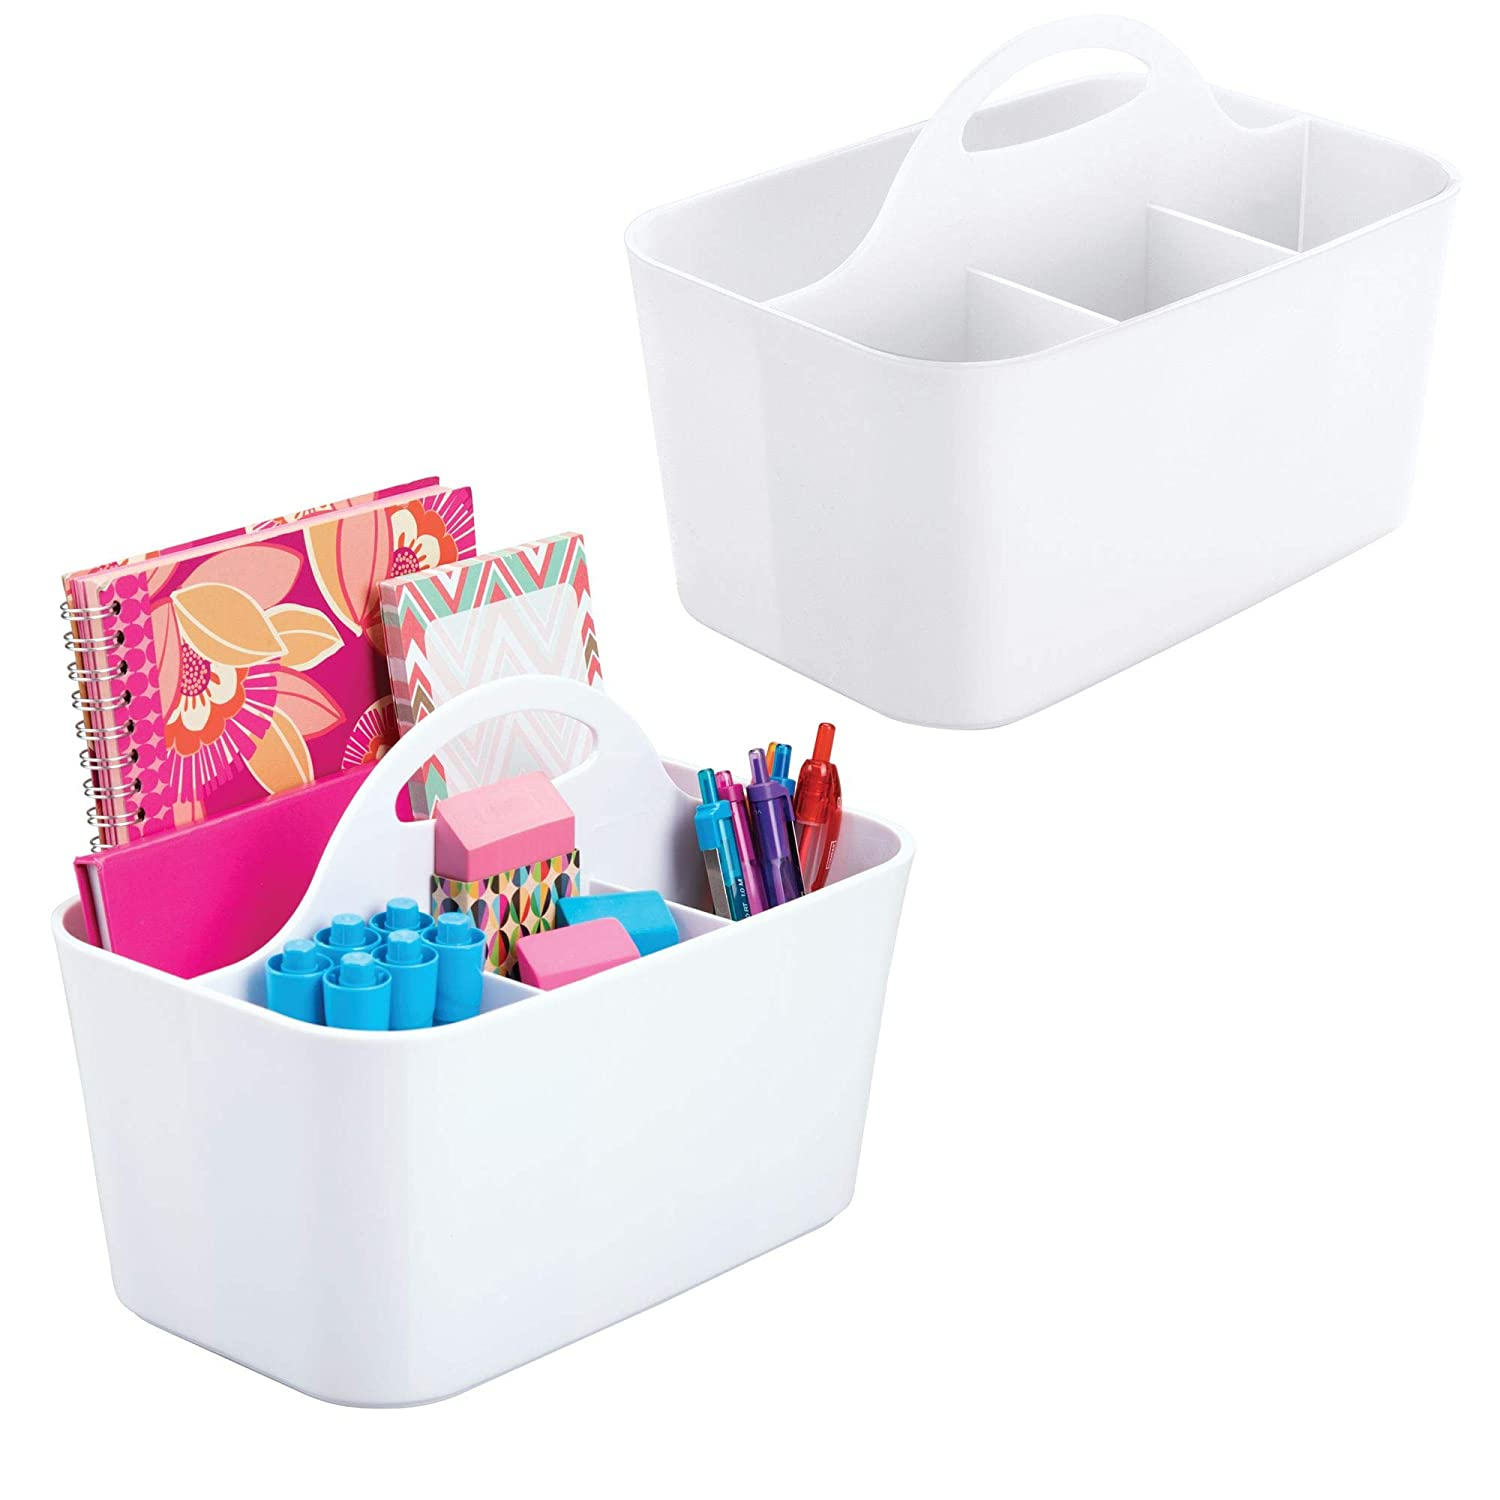 mDesign Office Desk Organization Caddy for Office or Craft Use - Pack of 2, White MetroDecor